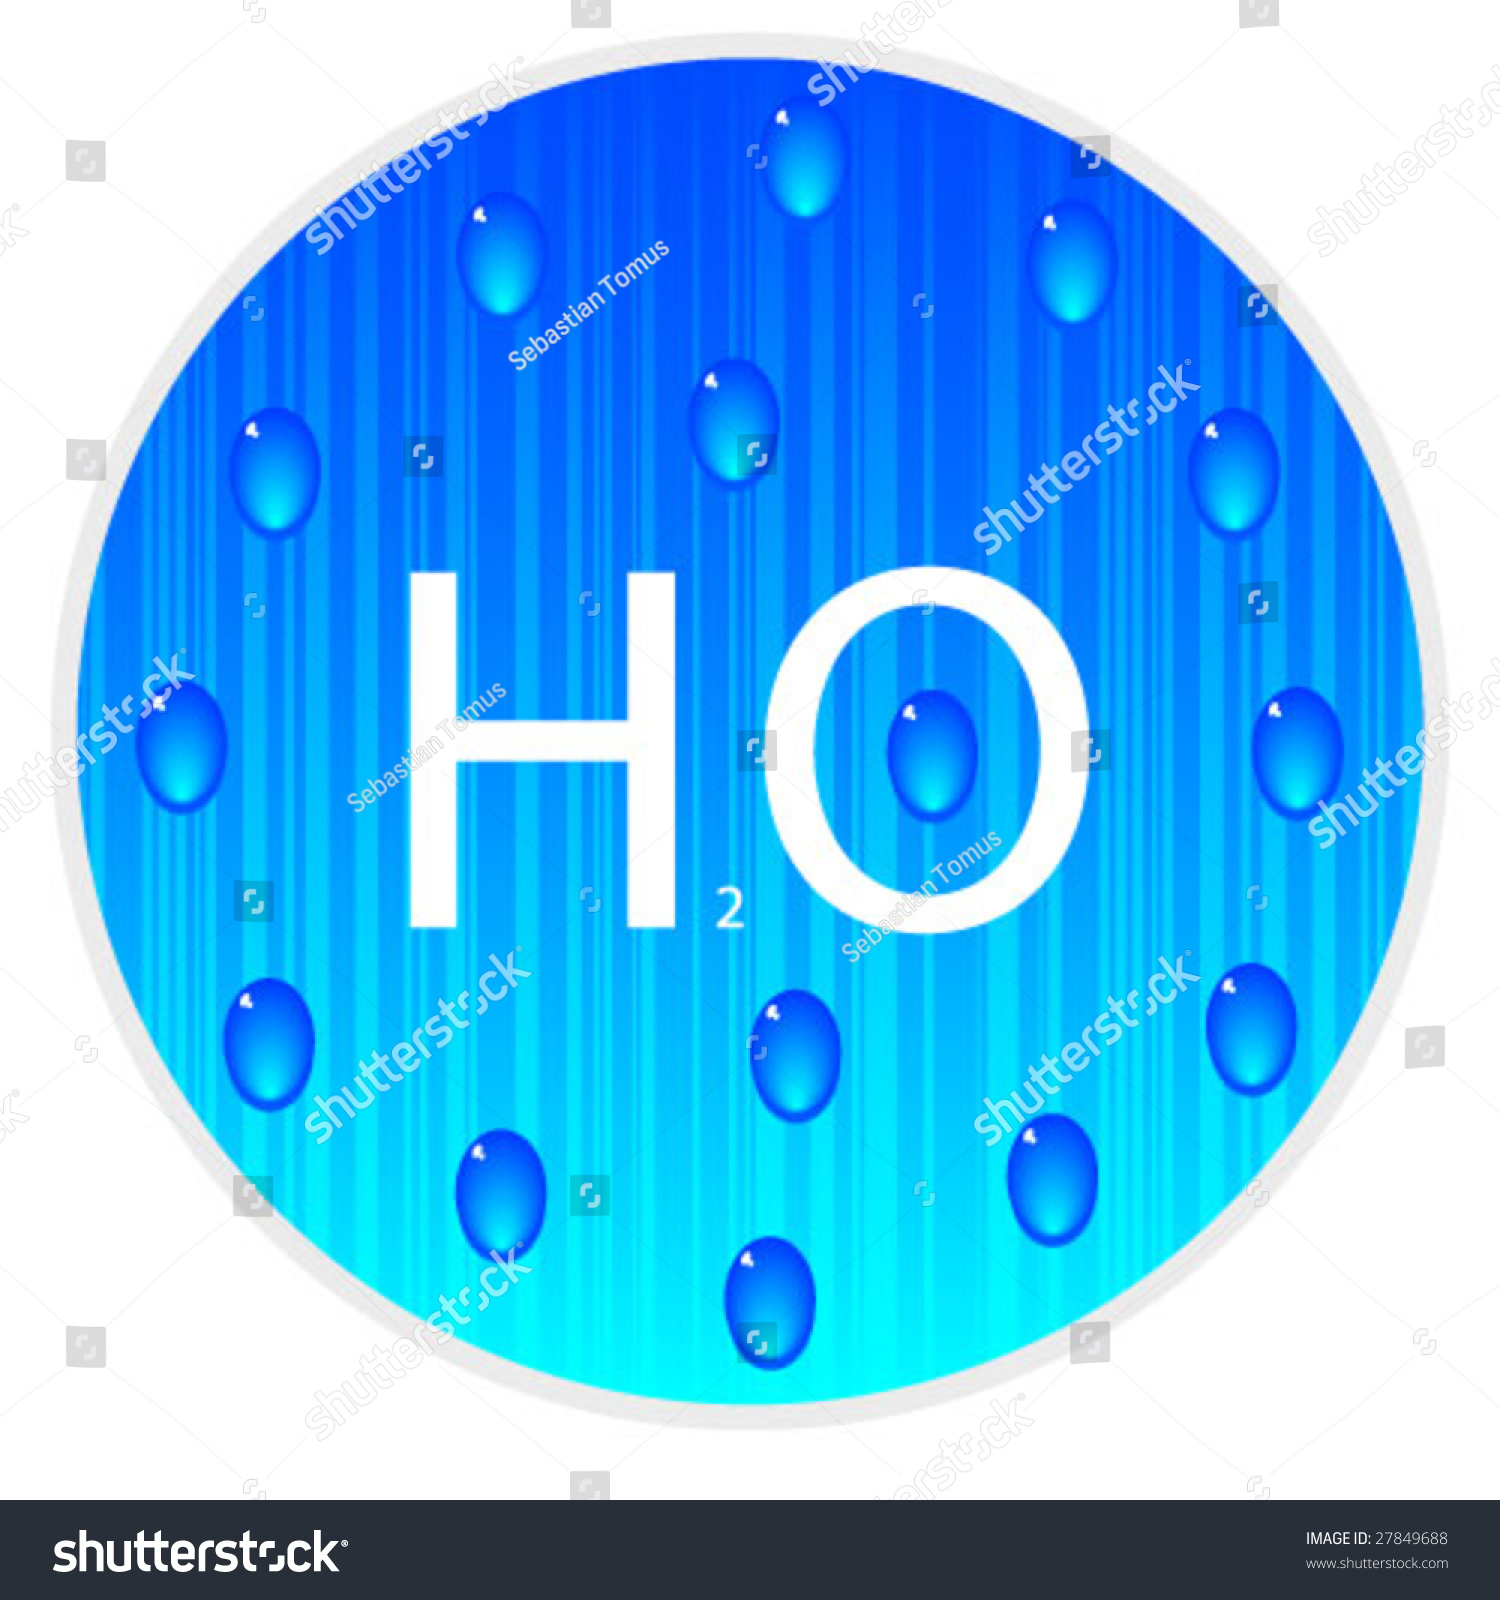 Chemical symbol water h2o vector illustration stock vector 27849688 chemical symbol of water h2o vector illustration buycottarizona Choice Image